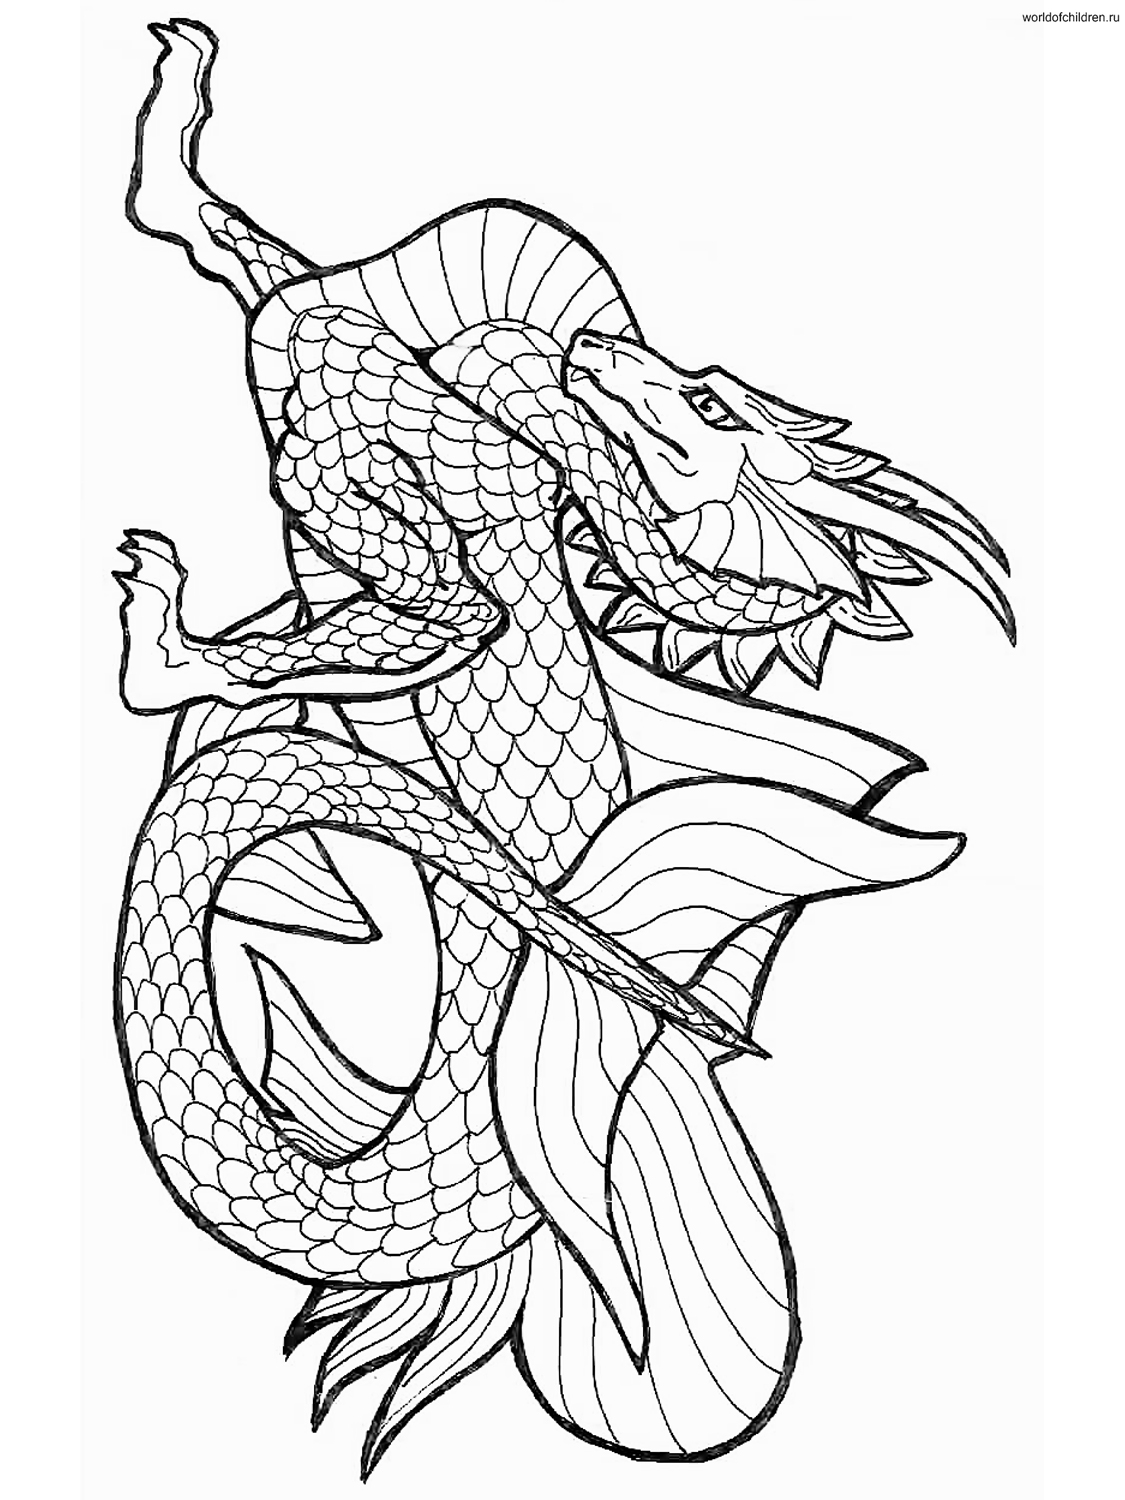 Printable coloring pages dragons - Chinese Dragon Coloring Pages